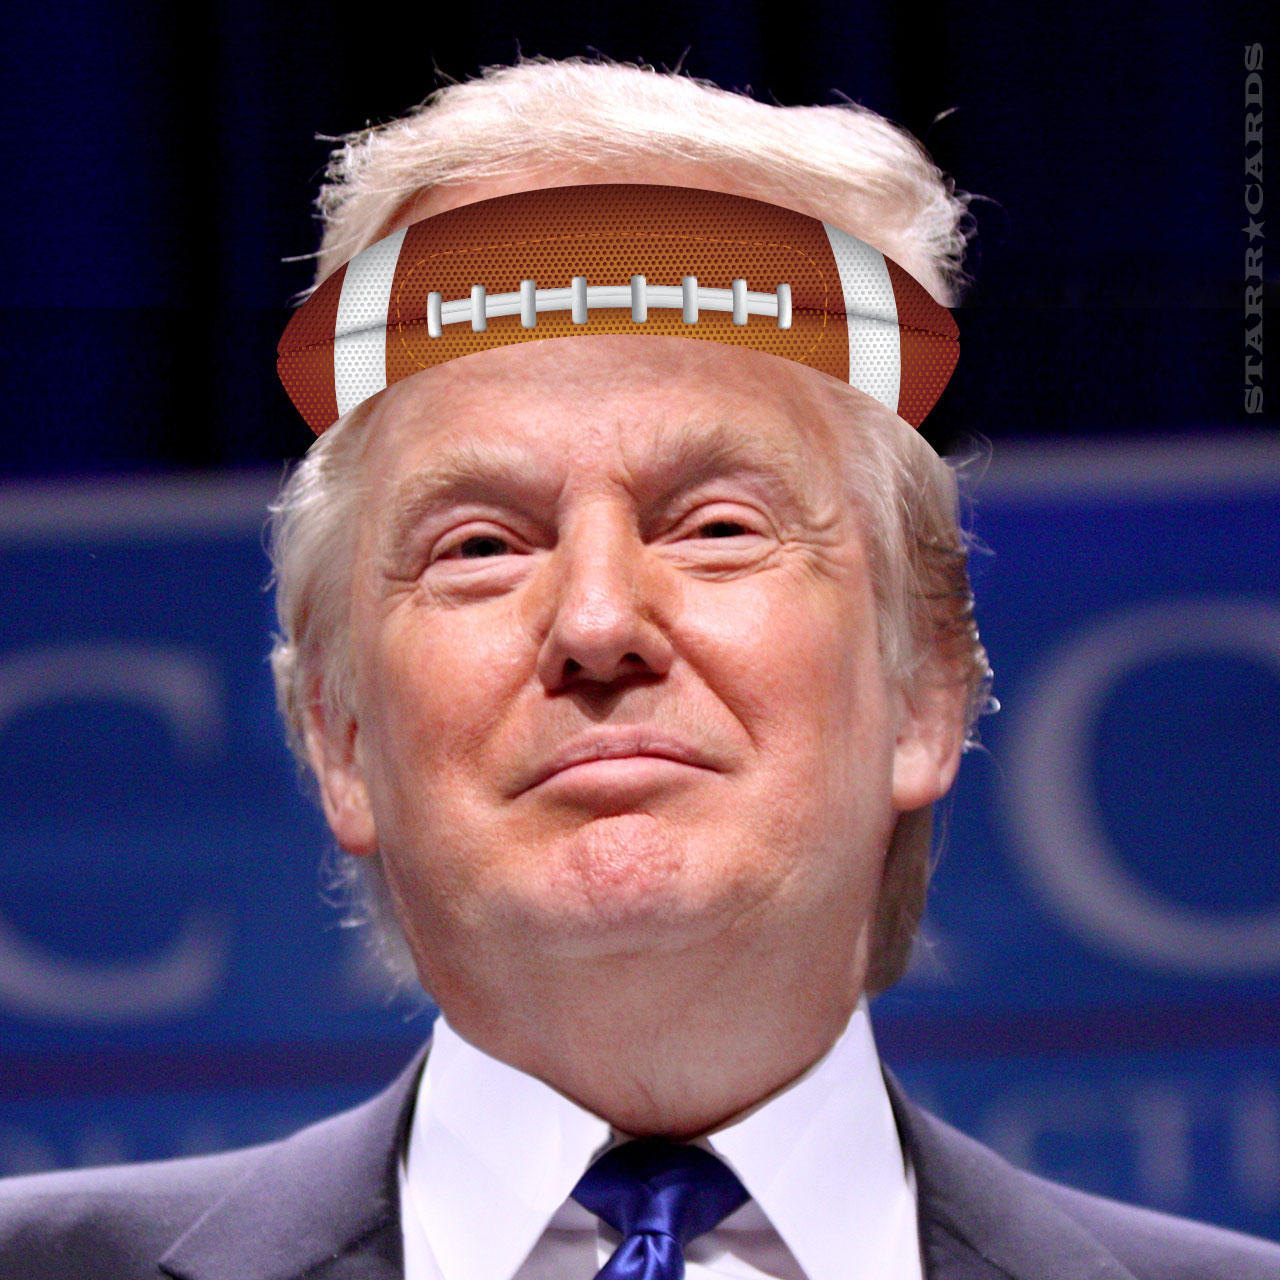 Donald Trump with football on the brain